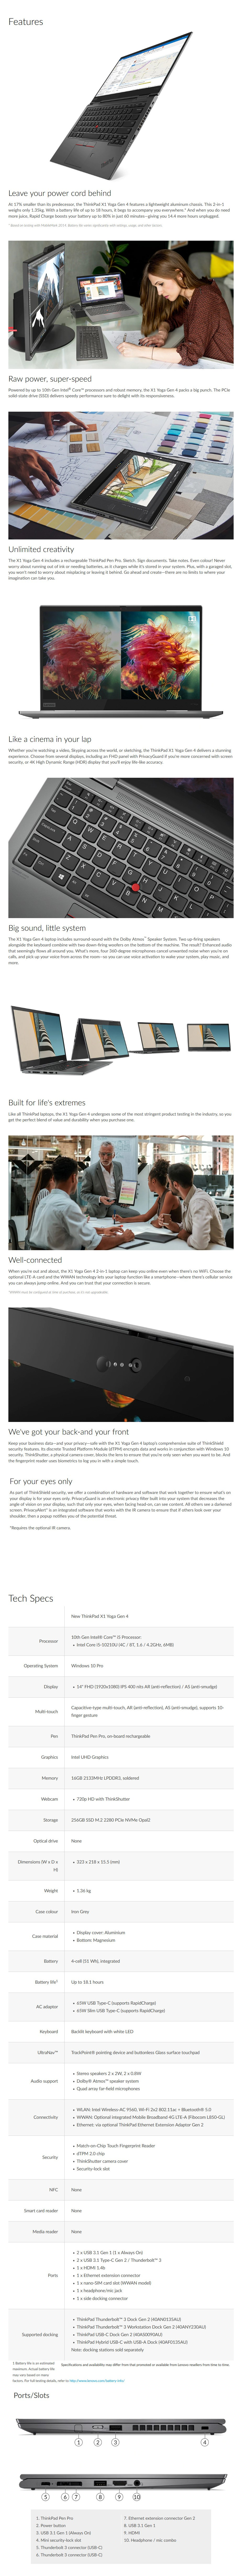 """Lenovo X1 Yoga 4th Gen 14"""" 2-in-1 Laptop i5-10210U 16GB 256GB W10P Touch - Overview 1"""